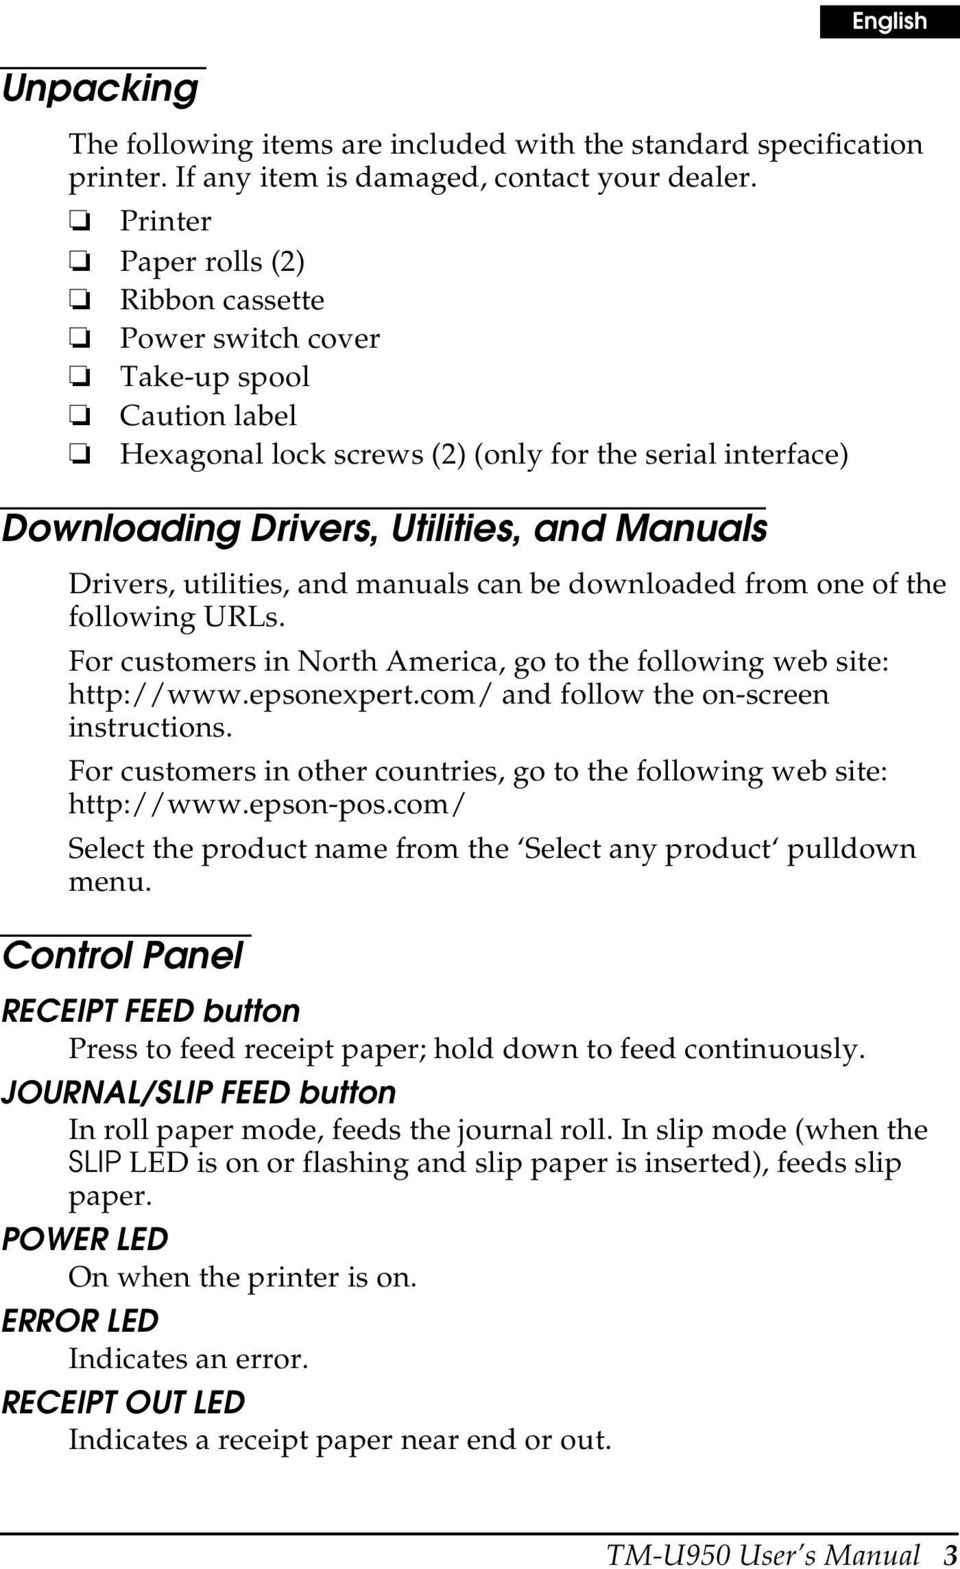 utilities, and manuals can be downloaded from one of the following URLs. For customers in North America, go to the following web site: http://www.epsonexpert.